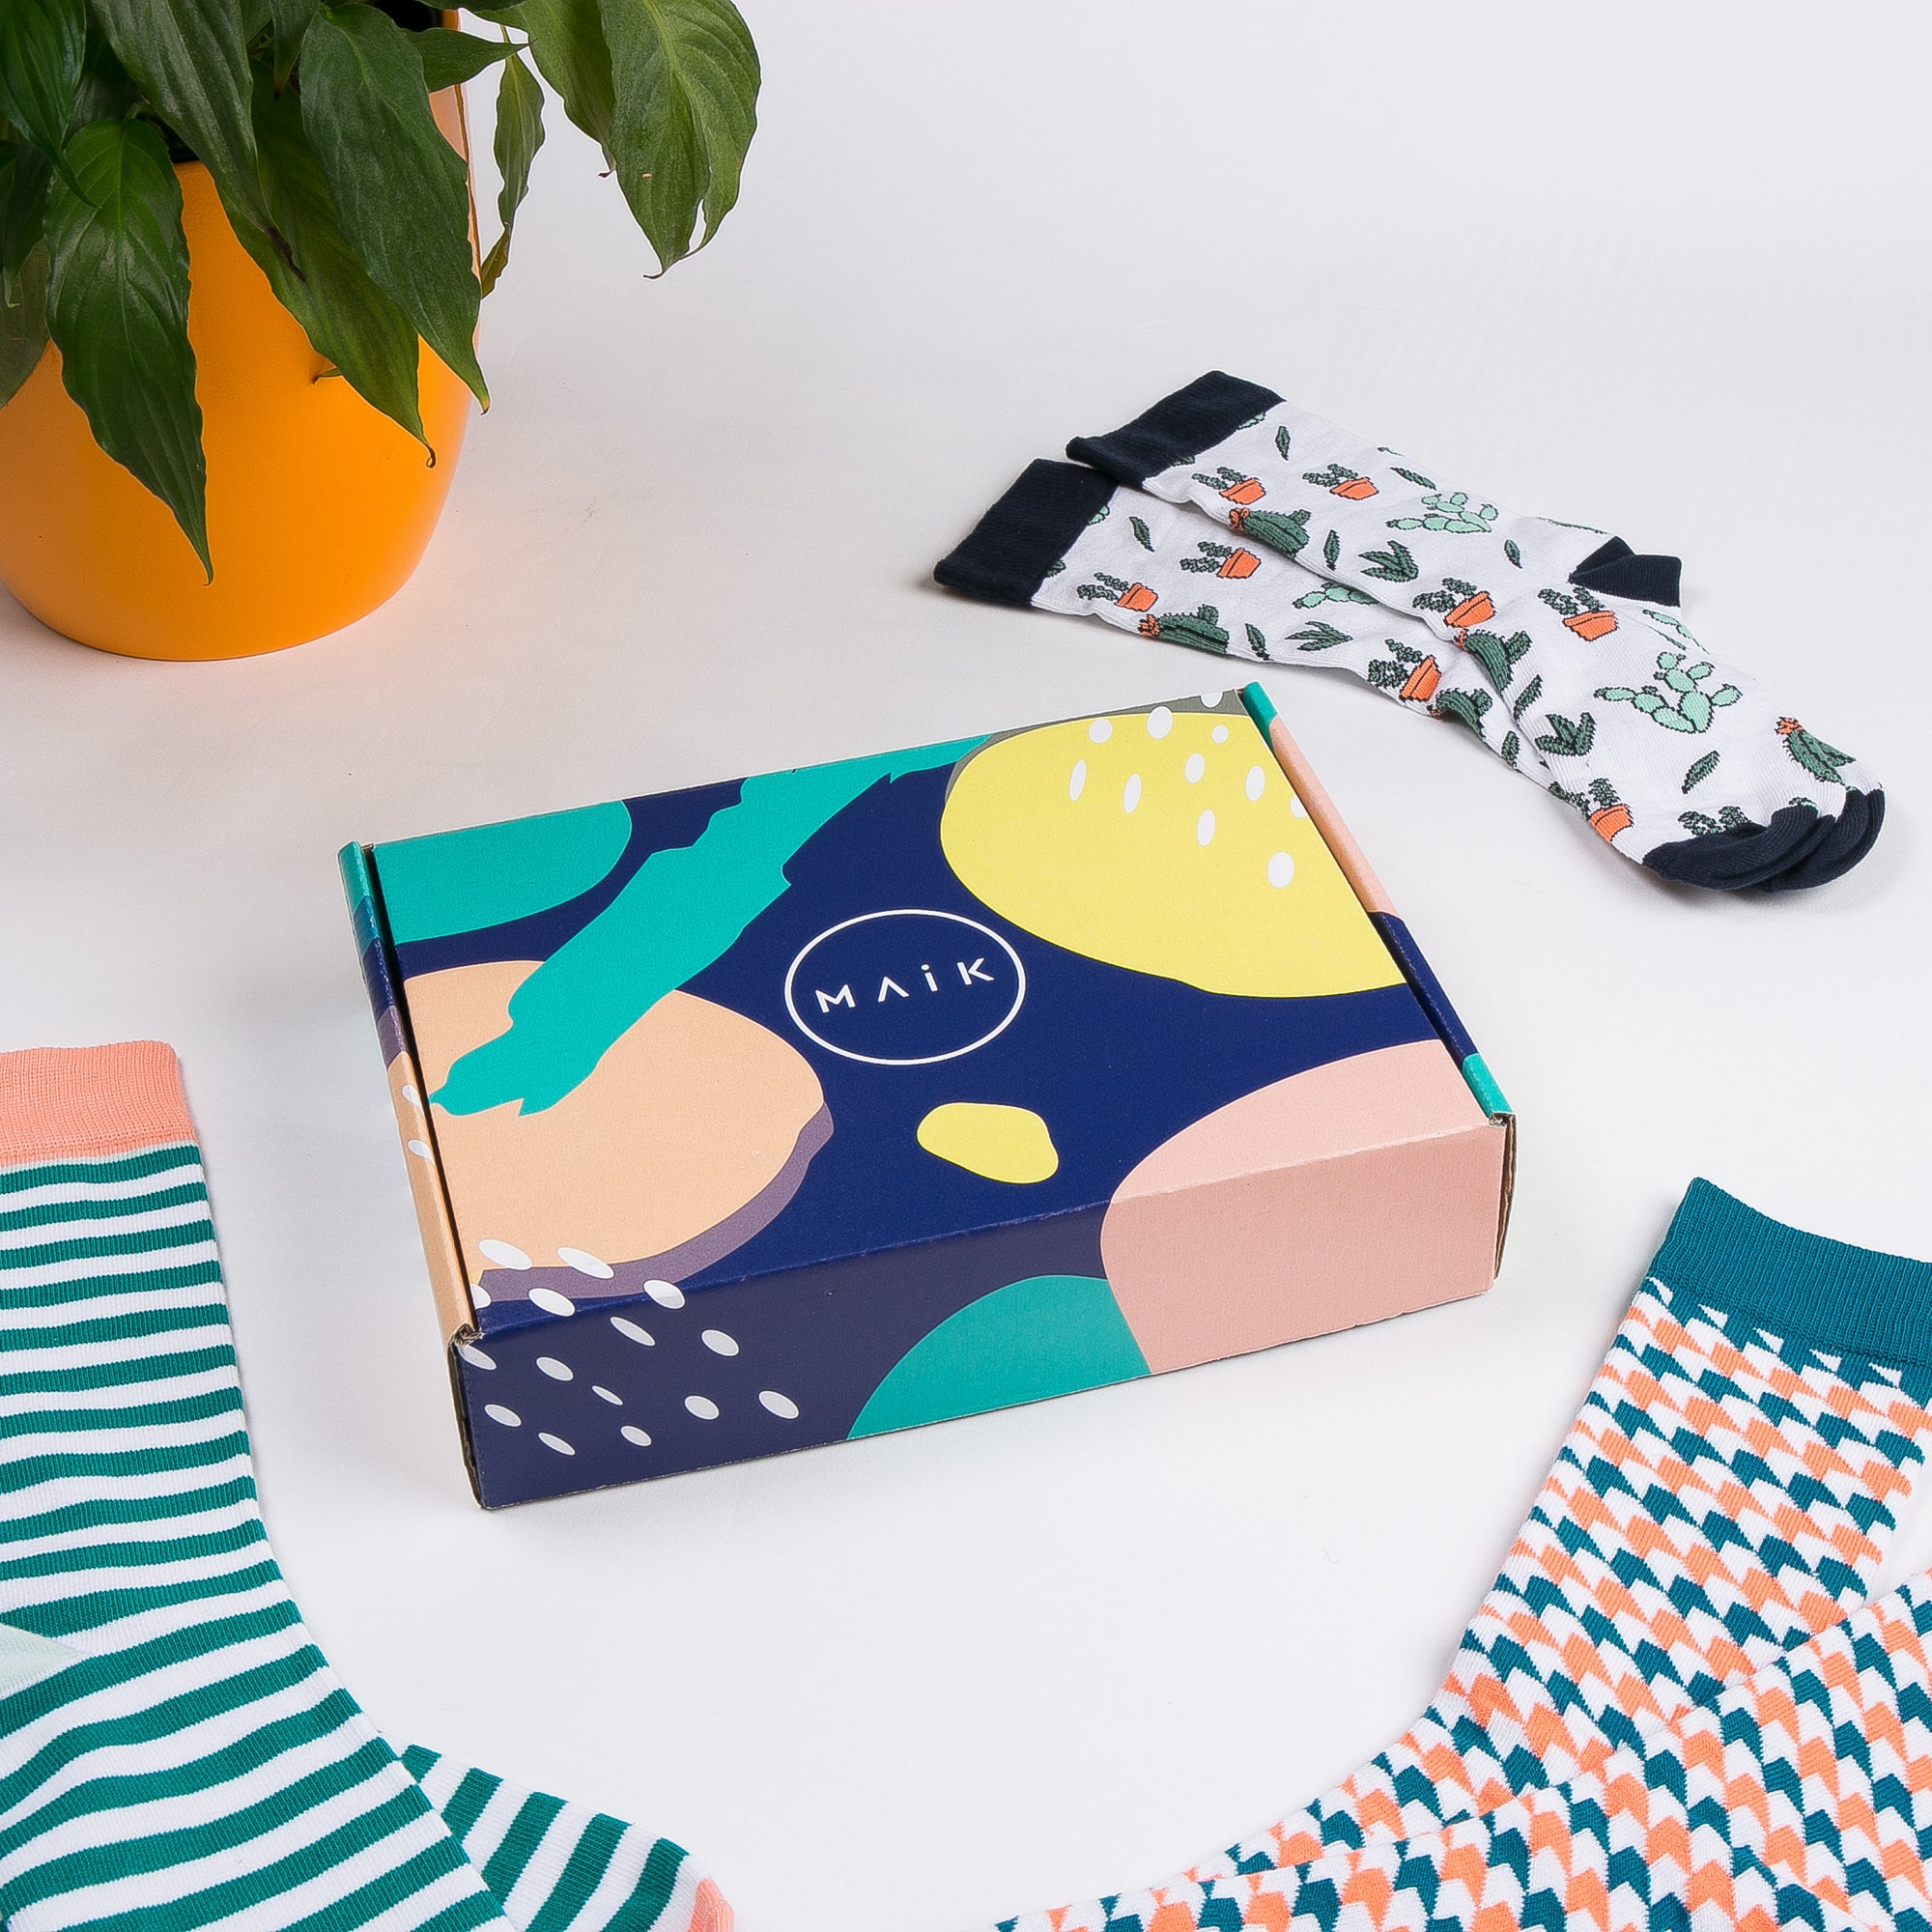 Sock Gift Box - MAiK sustainably sourced, ethically produced.